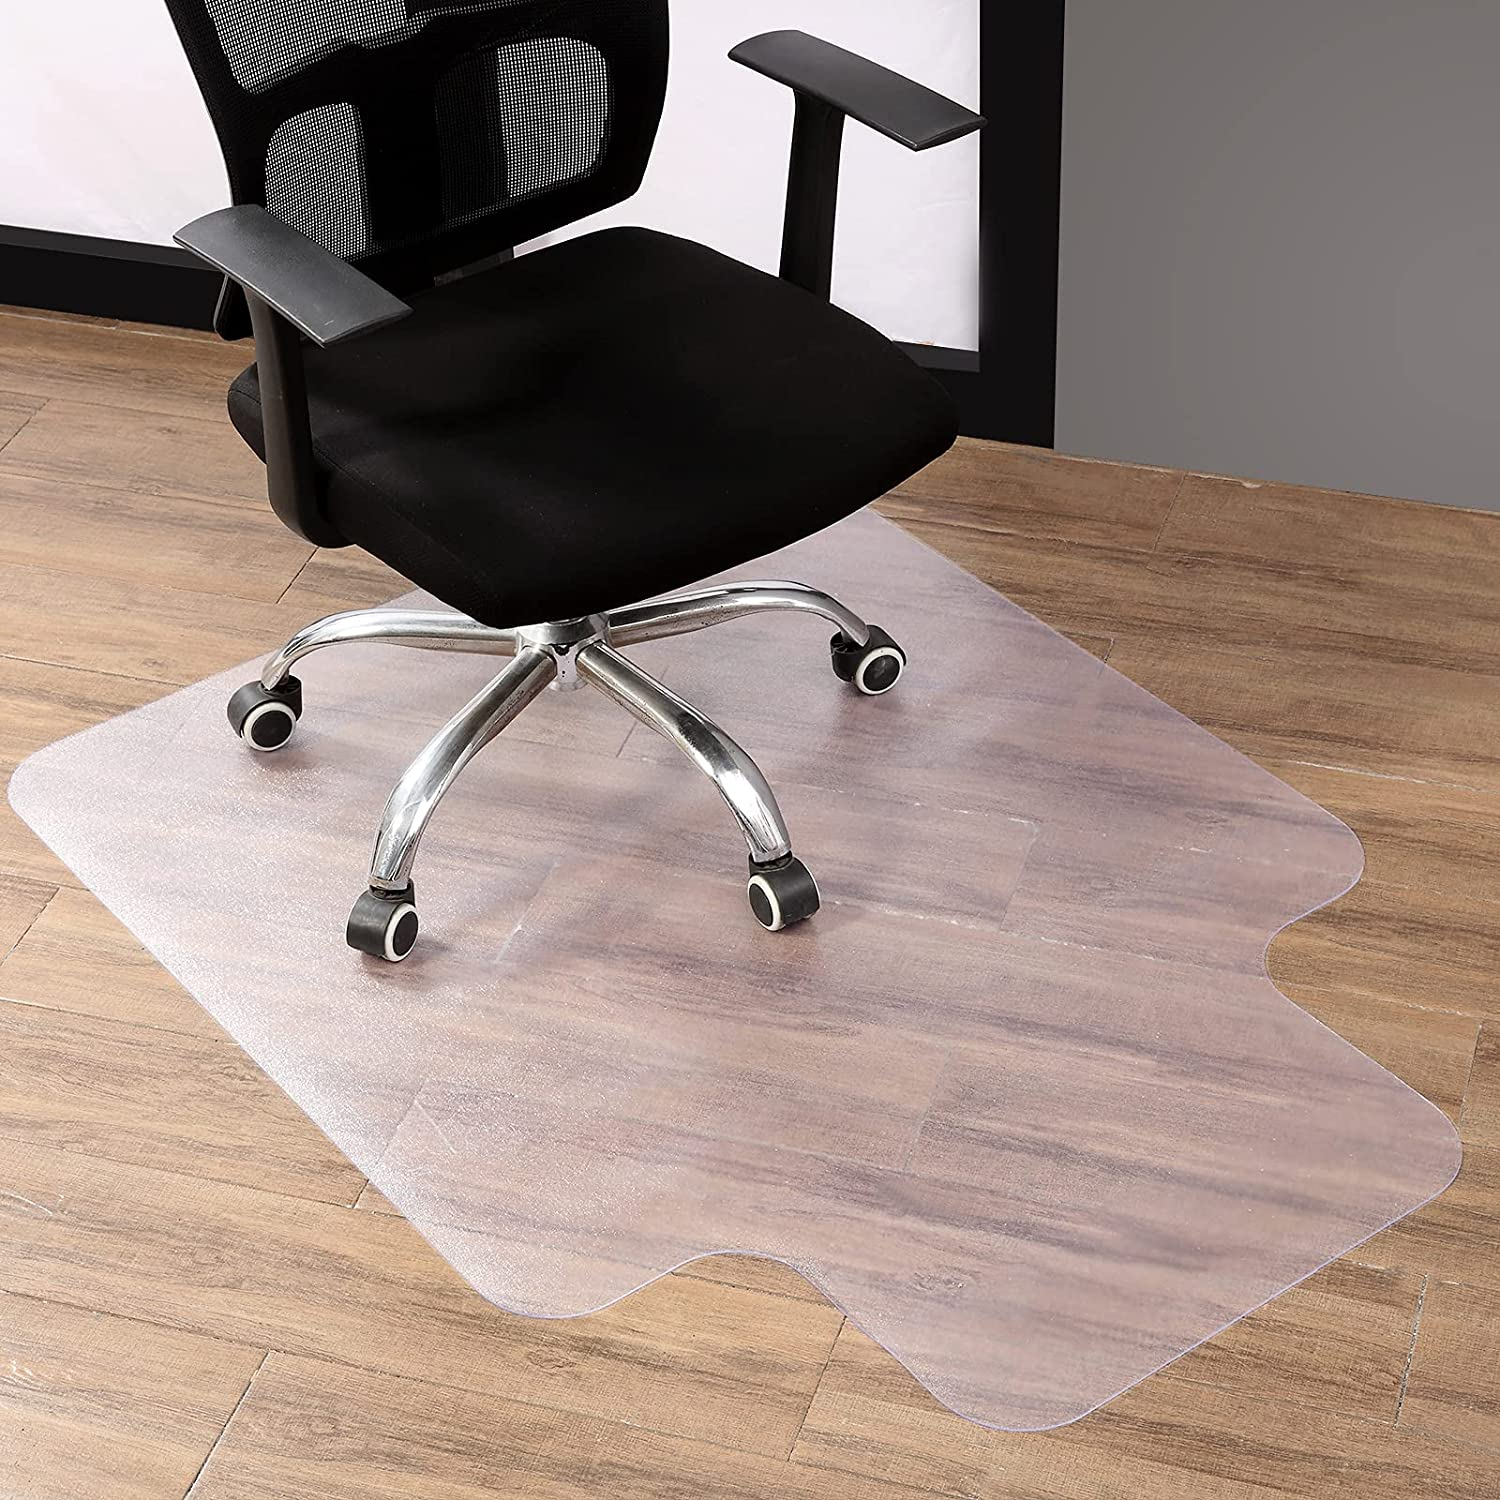 Wholesale Our shop most popular Office Clear Chair Mat for Floo Hardwood Floor Home Transparent